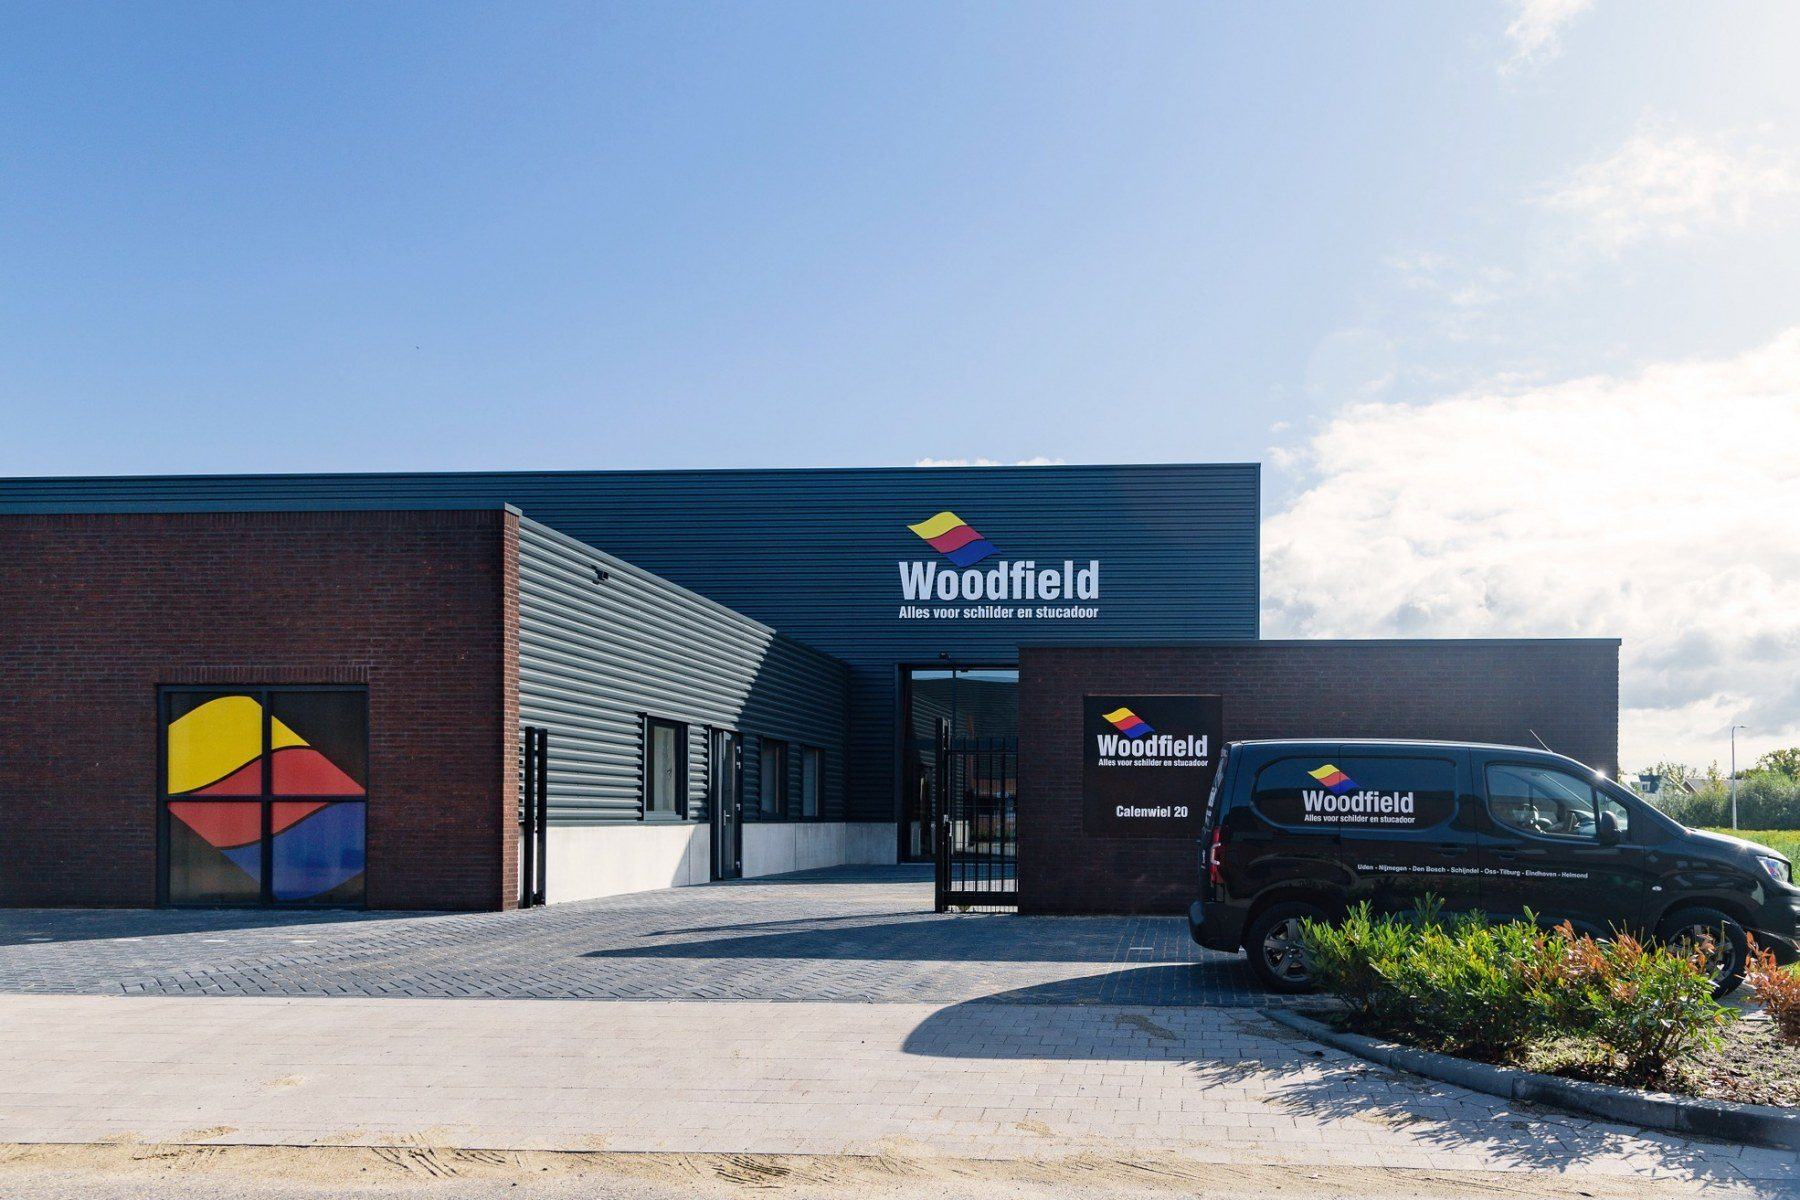 Pand Woodfield Tilburg